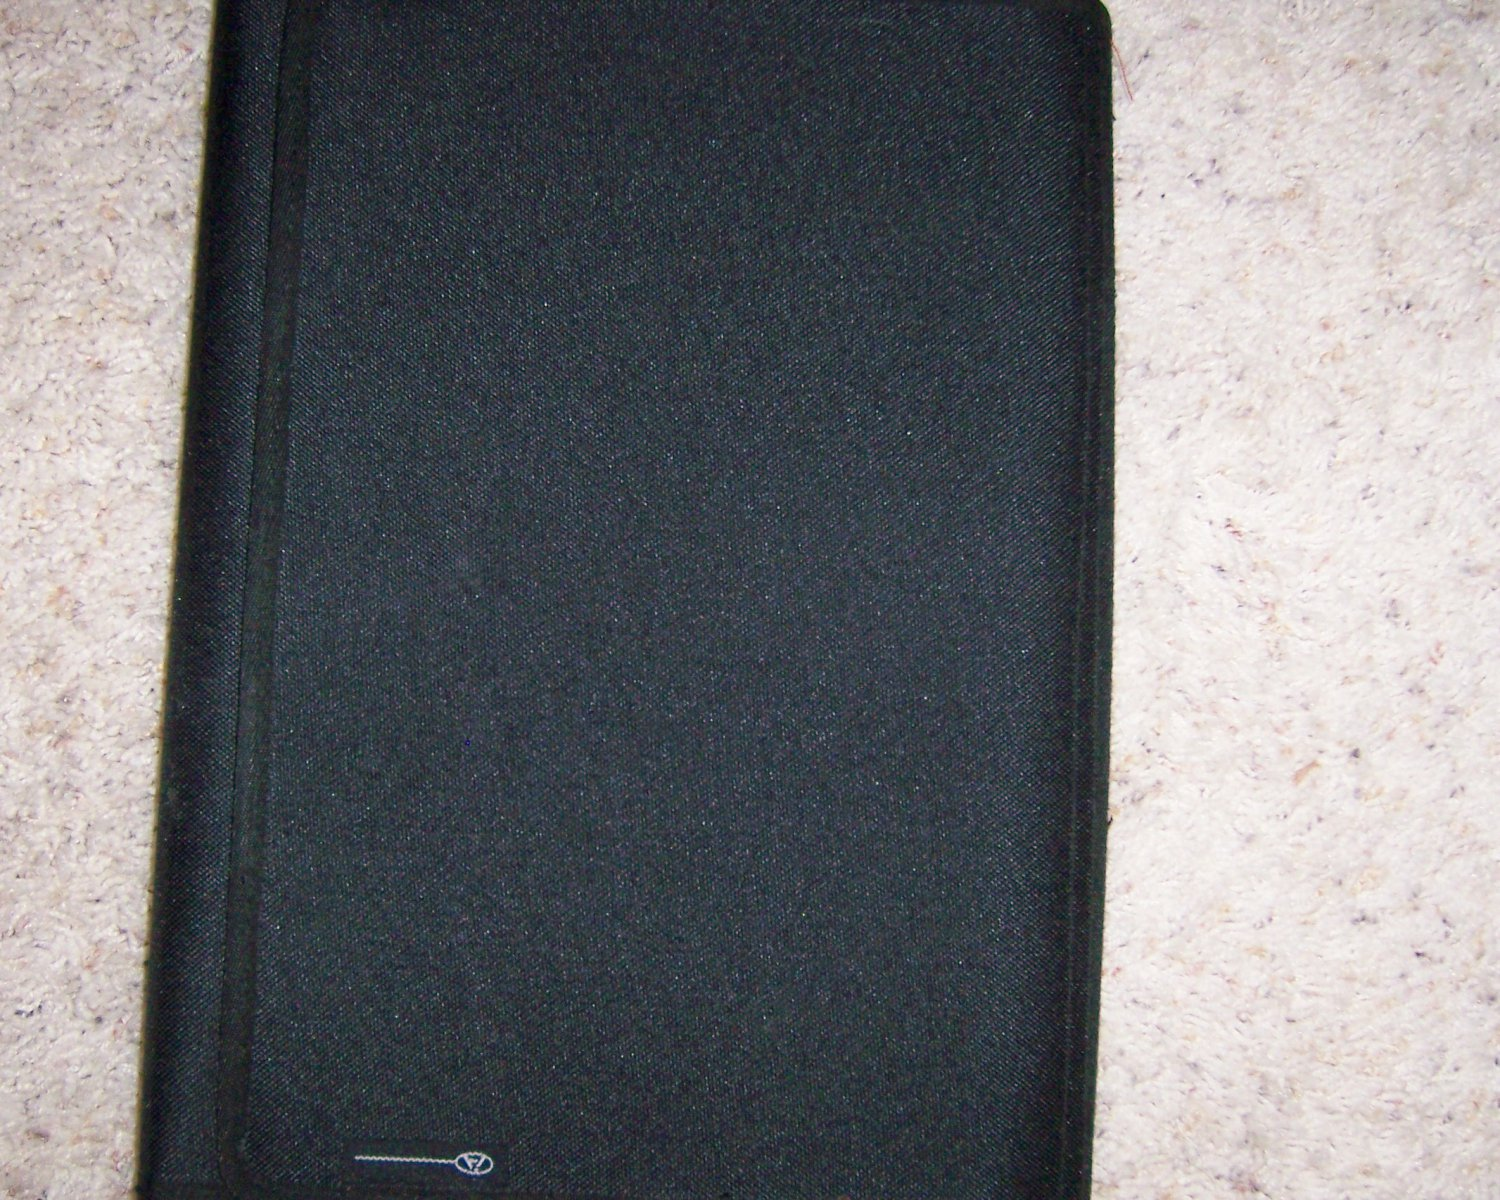 Folder With 11x8 Note Pad & Cakcukator  BNK1153